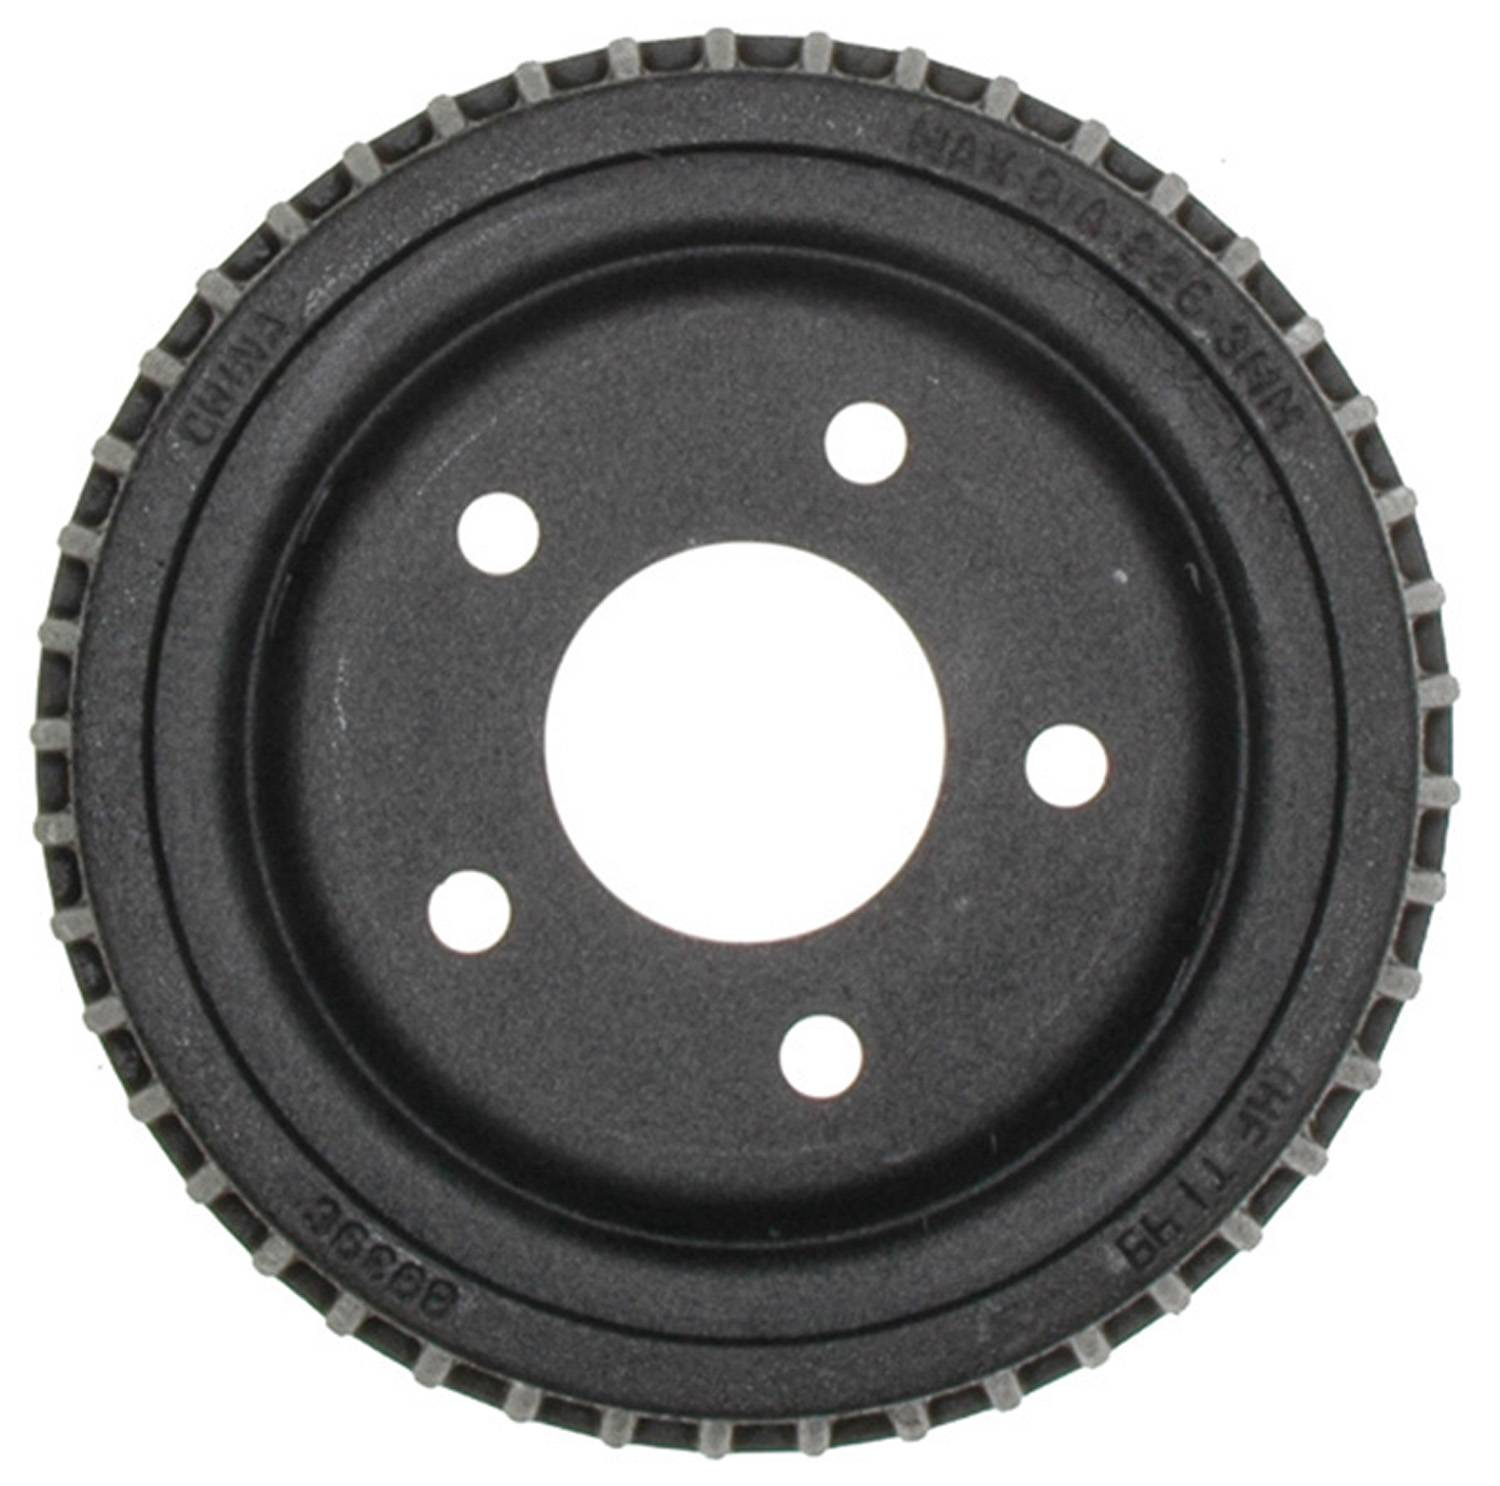 ACDELCO ADVANTAGE - Brake Drum - DCD 18B136A